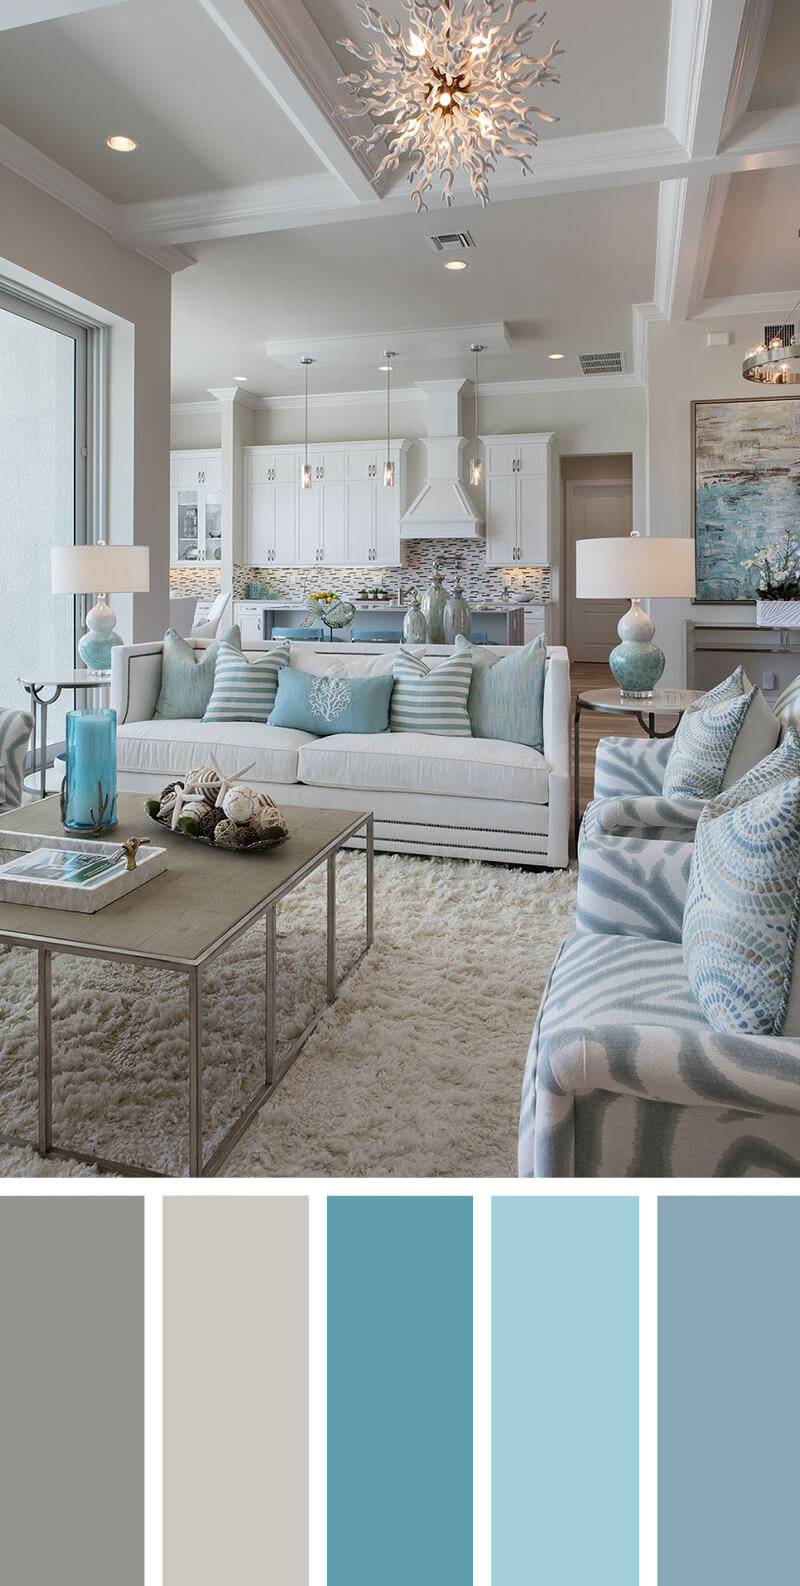 Best ideas about Living Room Color Ideas . Save or Pin 21 Cozy Living Room Paint Colors Ideas for 2019 Now.